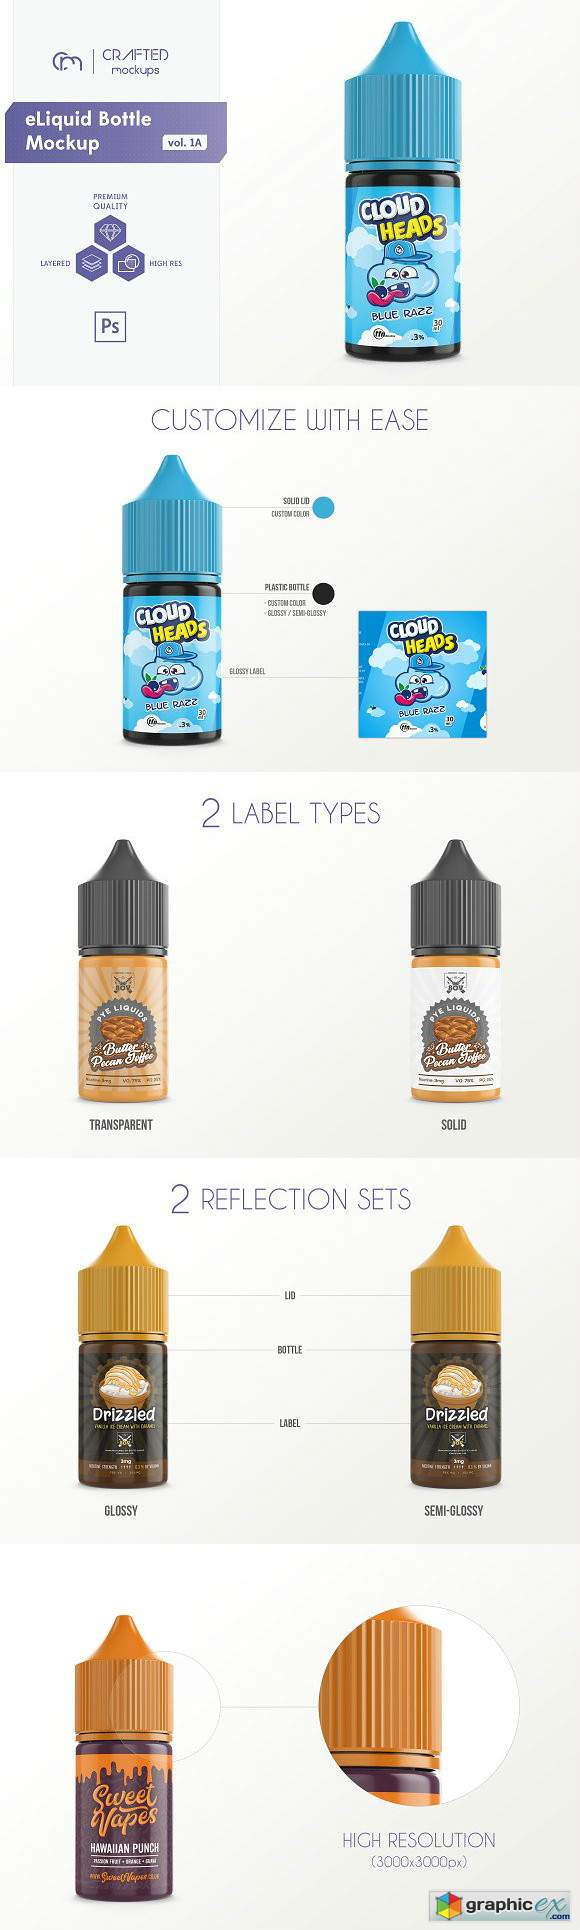 eLiquid Bottle Mockup v 1A